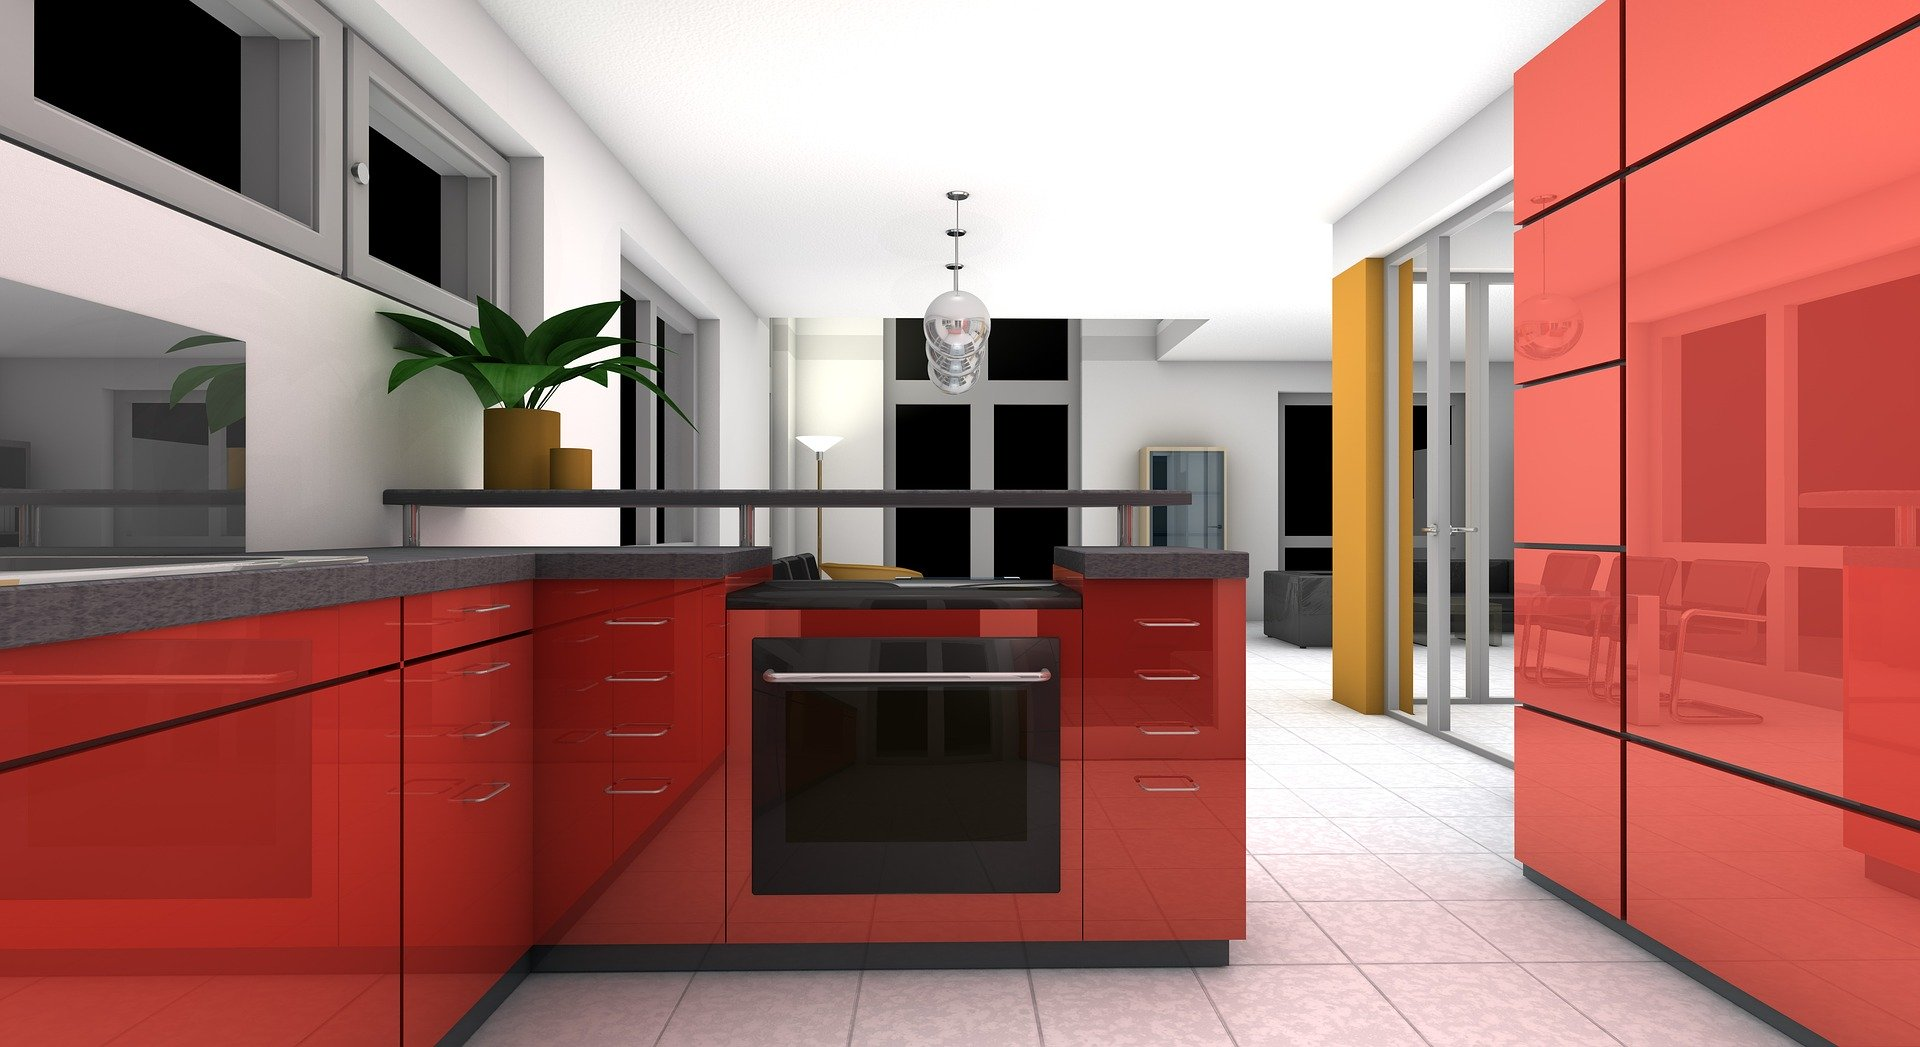 2 kitchen-1543493_1920